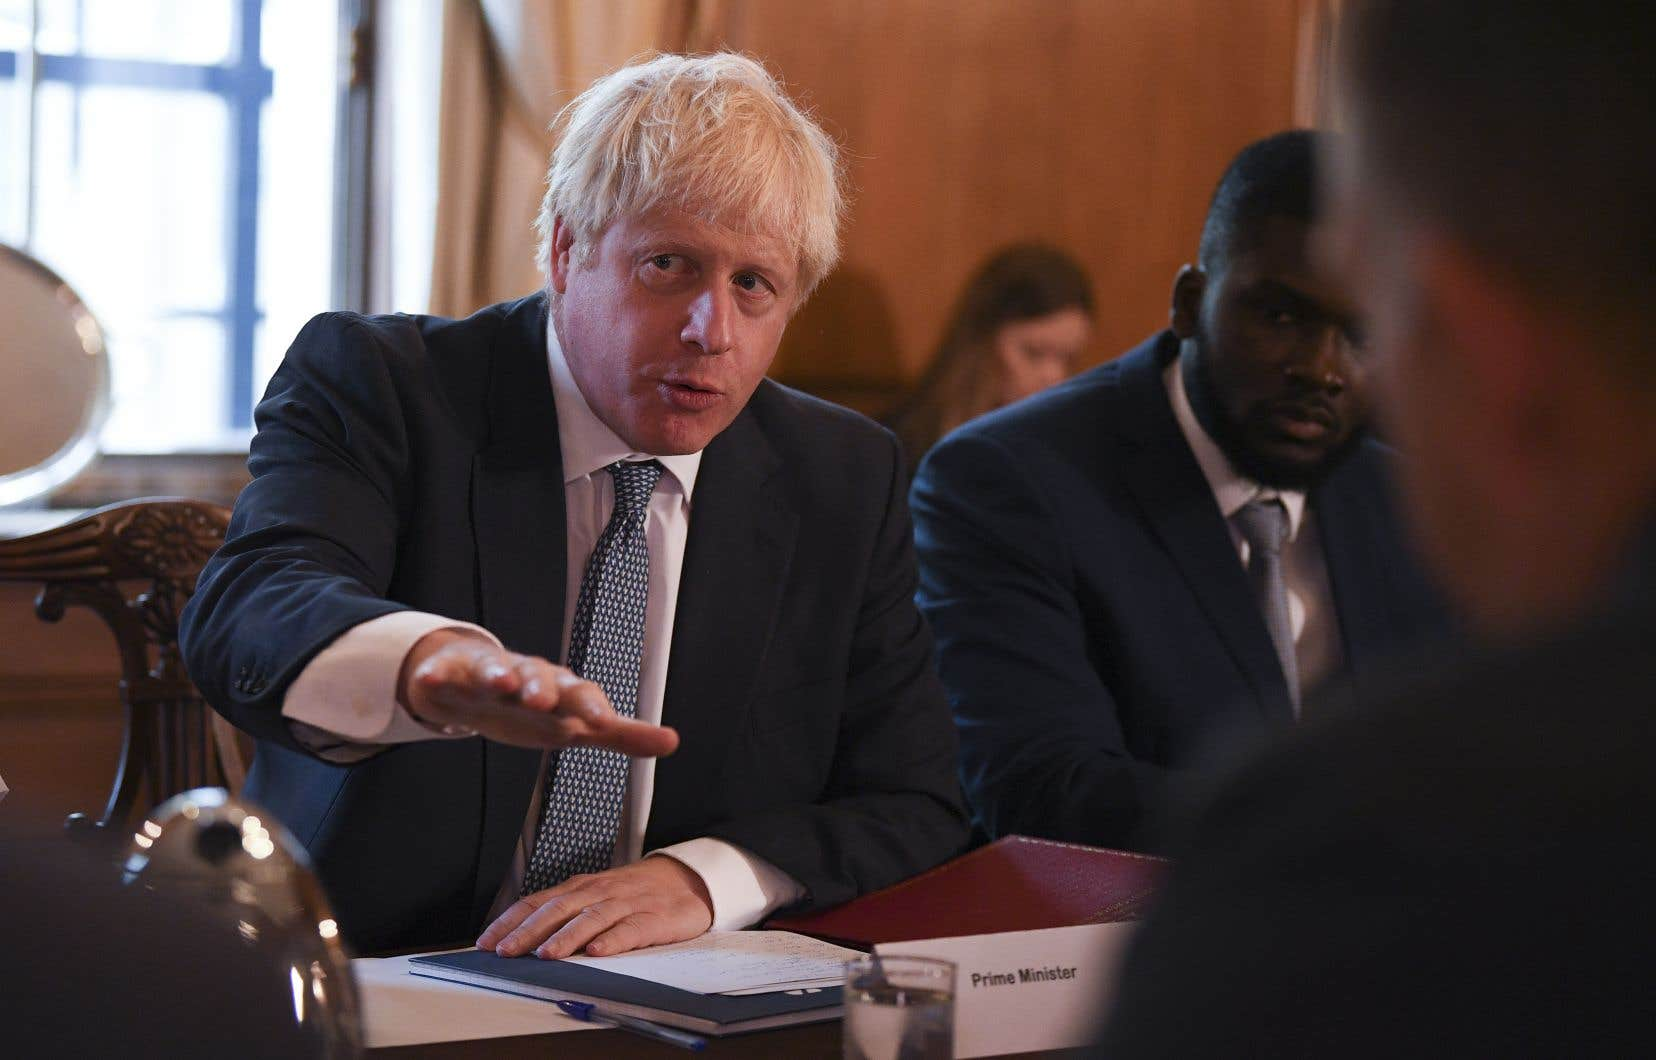 Boris Johnson veut faire pression sur l'UE pour obtenir un nouvel accord en agitant la menace, de plus en plus imminente, d'un Brexit sans accord.